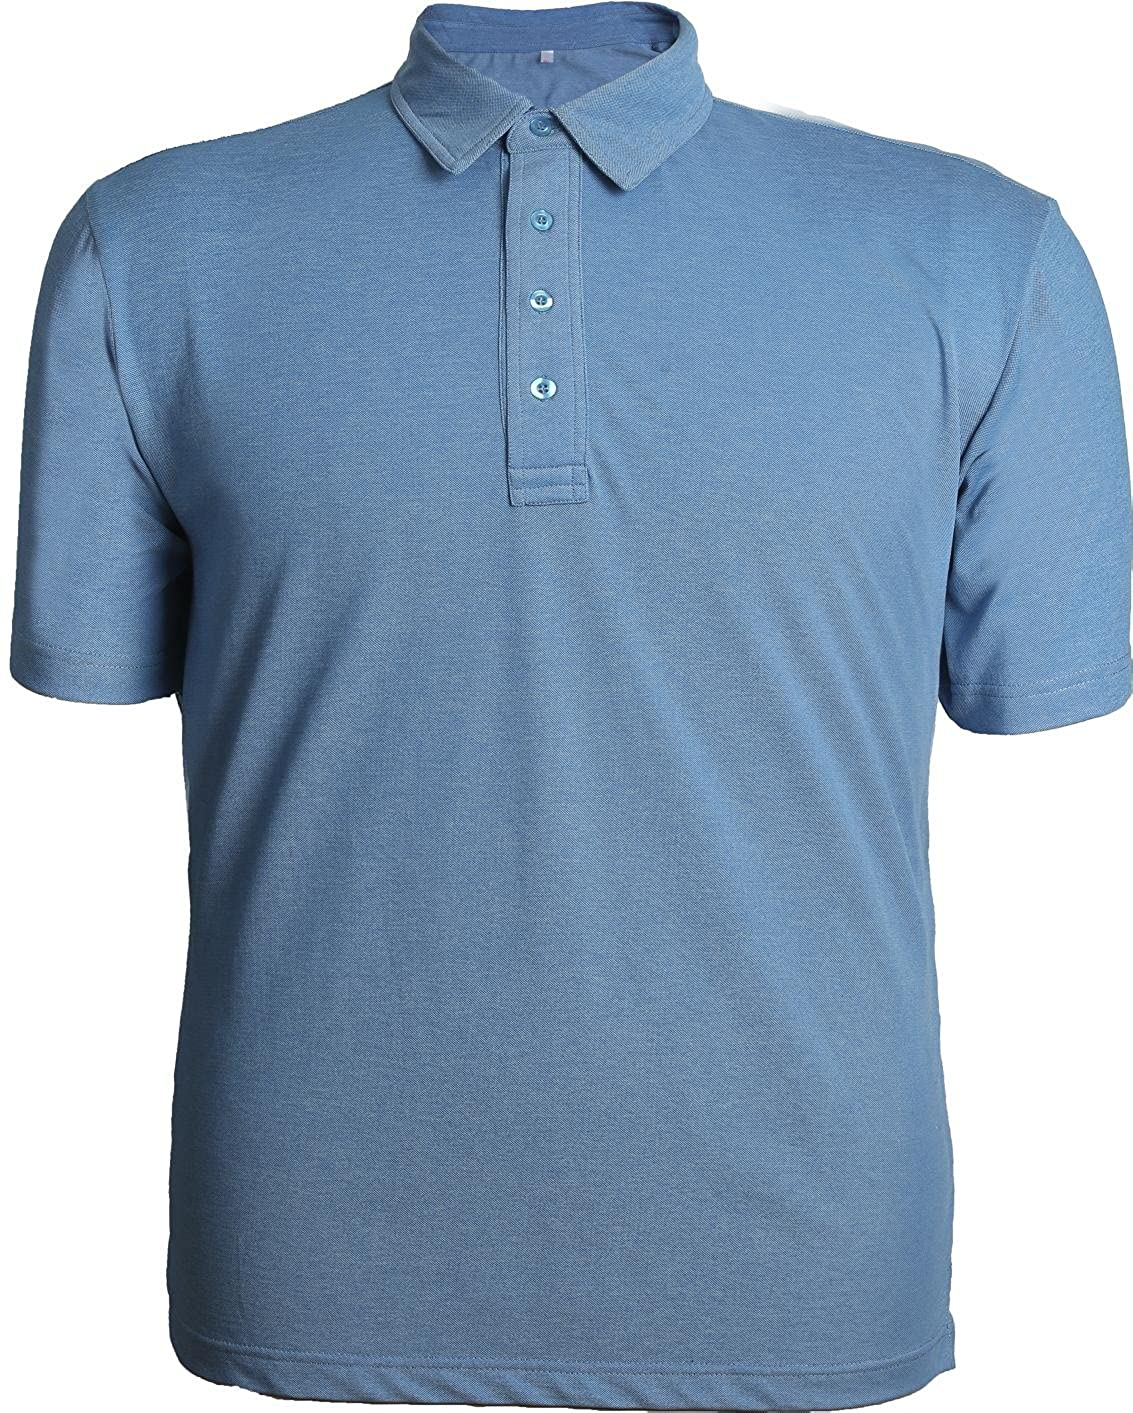 Mens Light Weight Dry Fit Moisture Wicking Soft Touch Short Sleeve Performance Polo Shirt